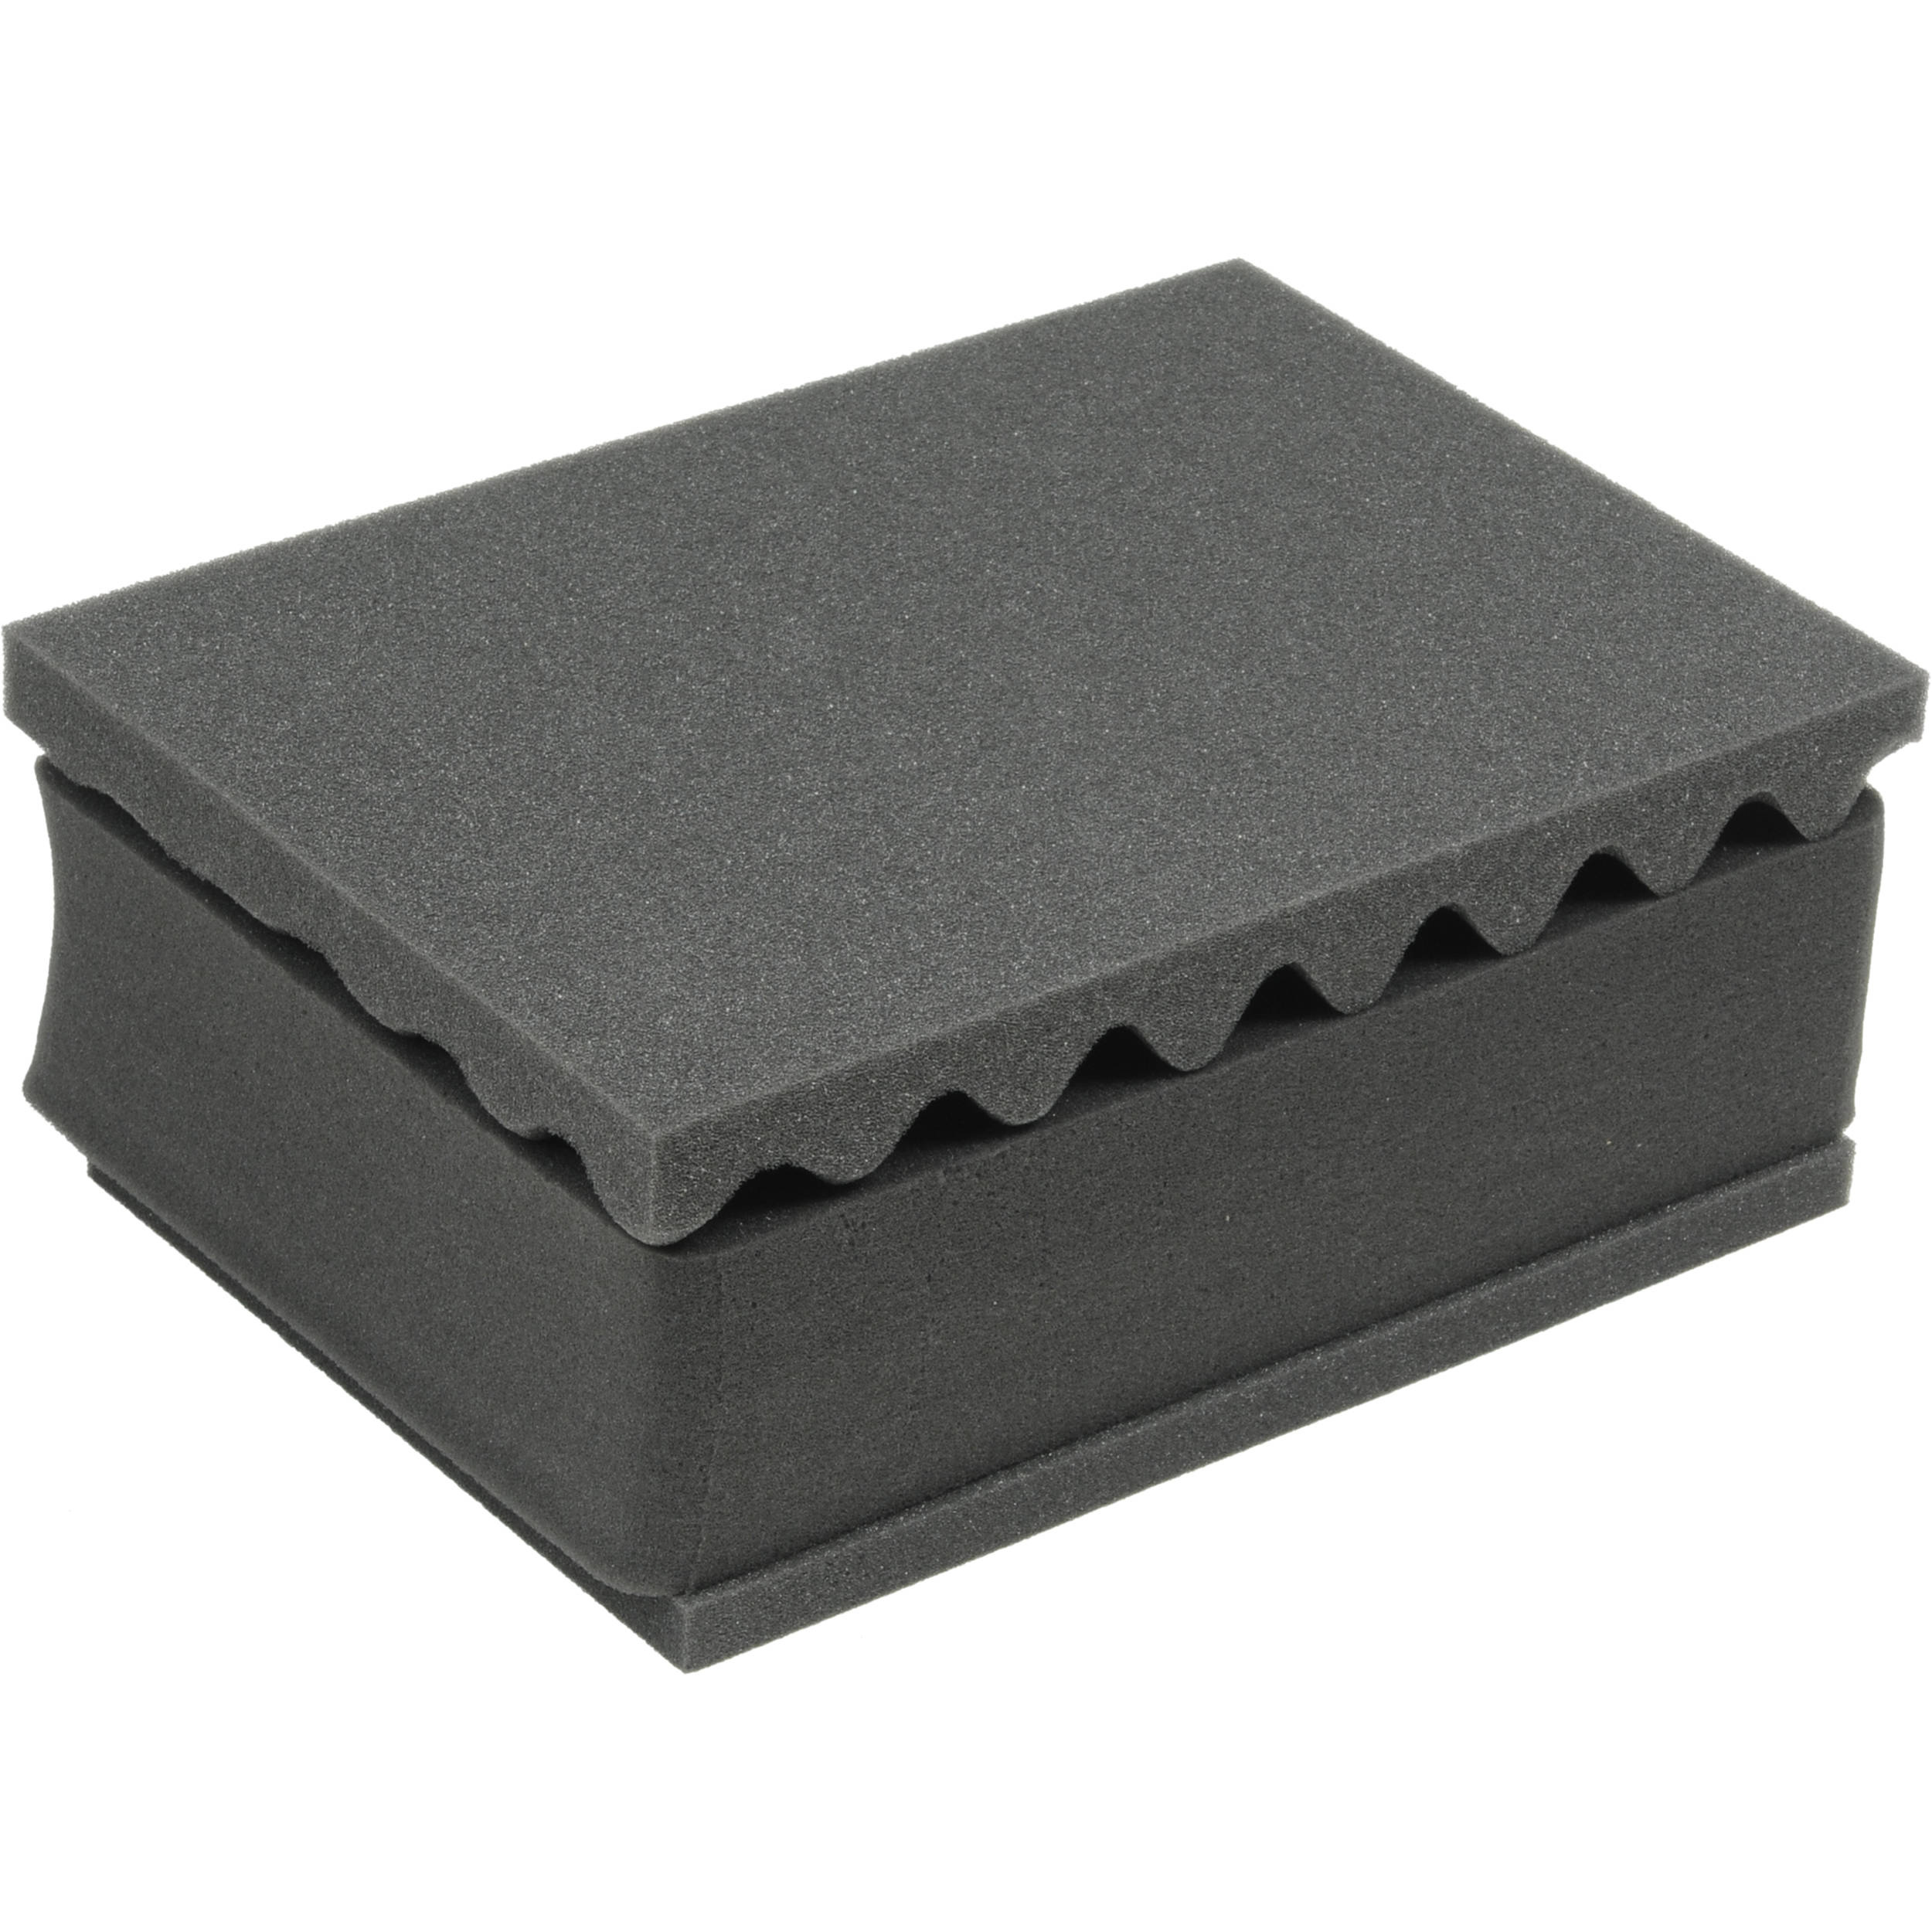 Pelican 1451 Replacement Foam Set